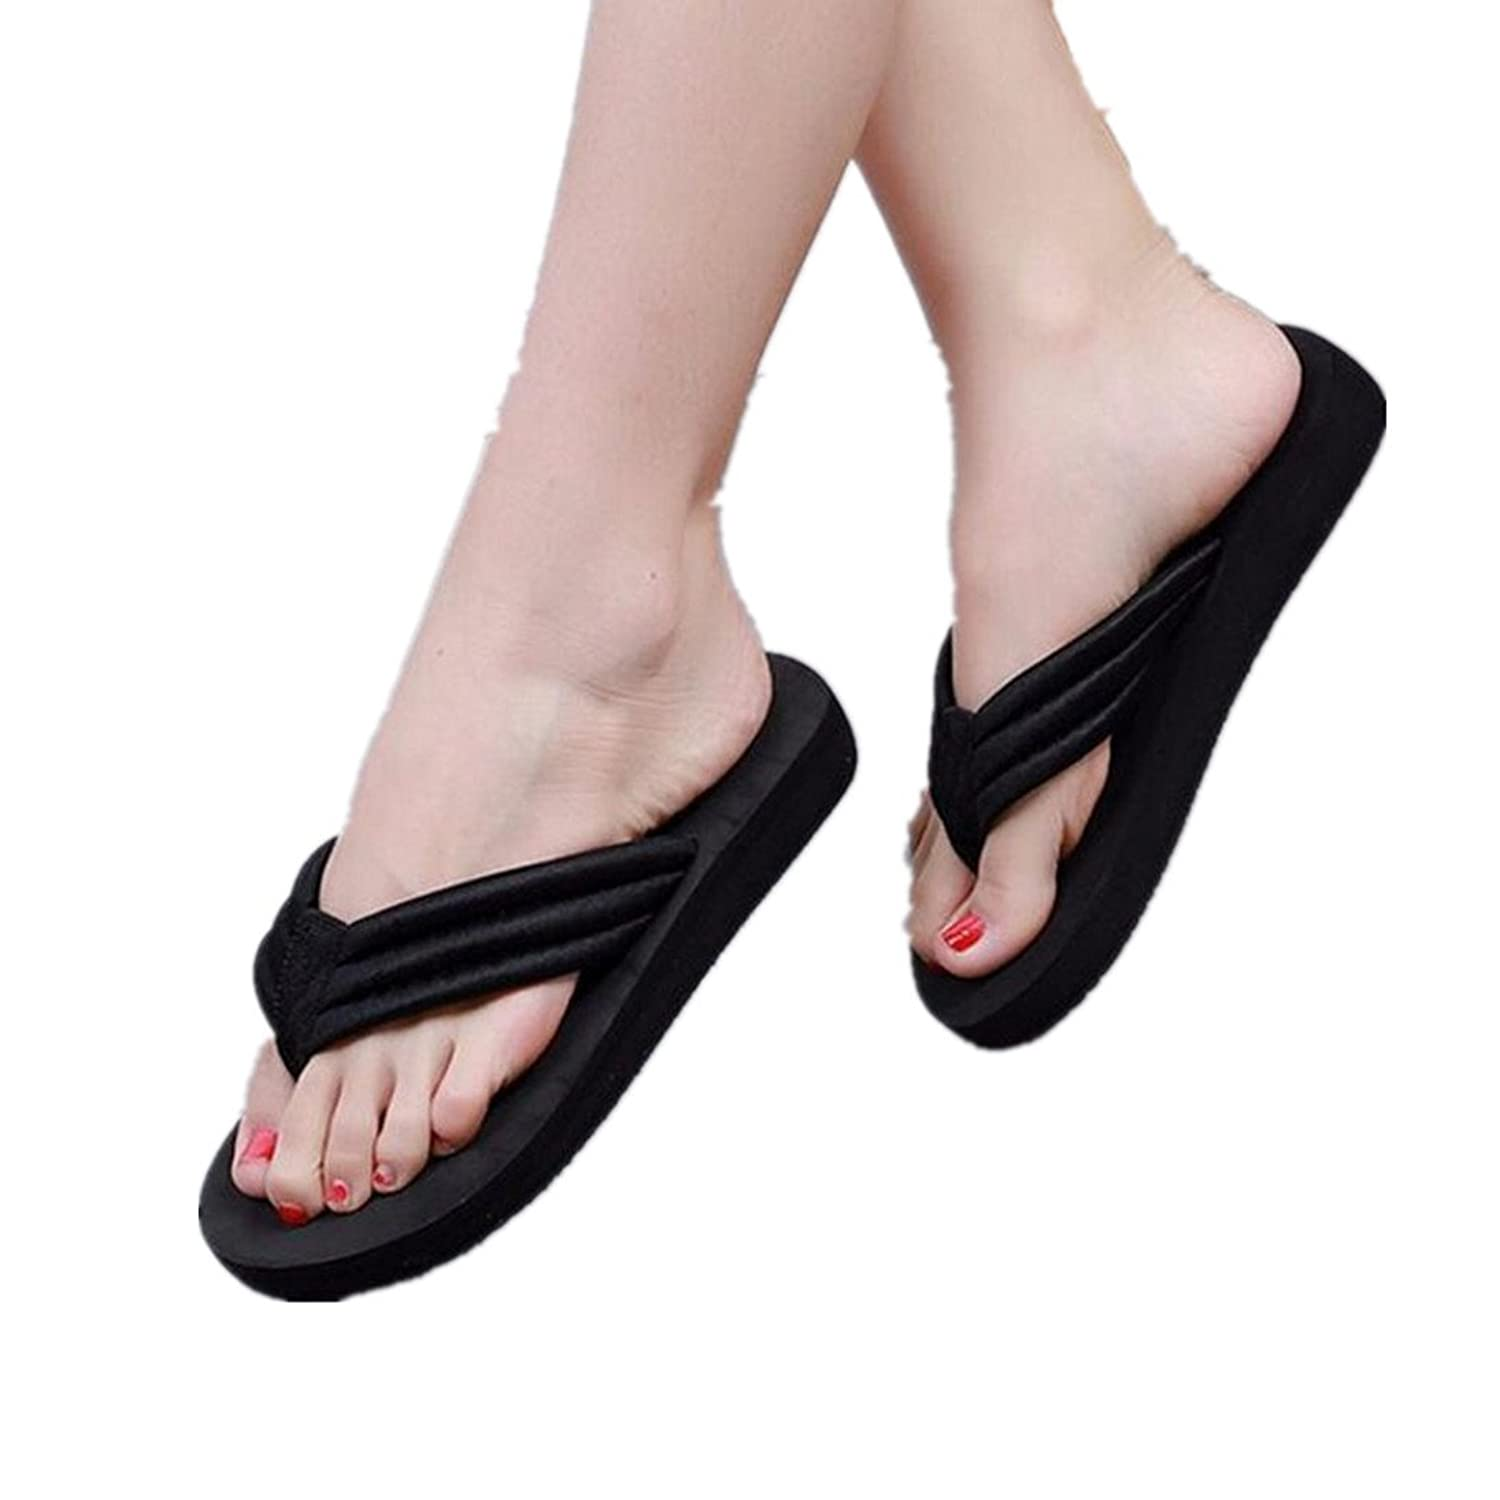 Fheaven Women Summer Slipper Casual Sandals Ankle Flat Strappy Gladiator T-Ring Flip Flops Shoes